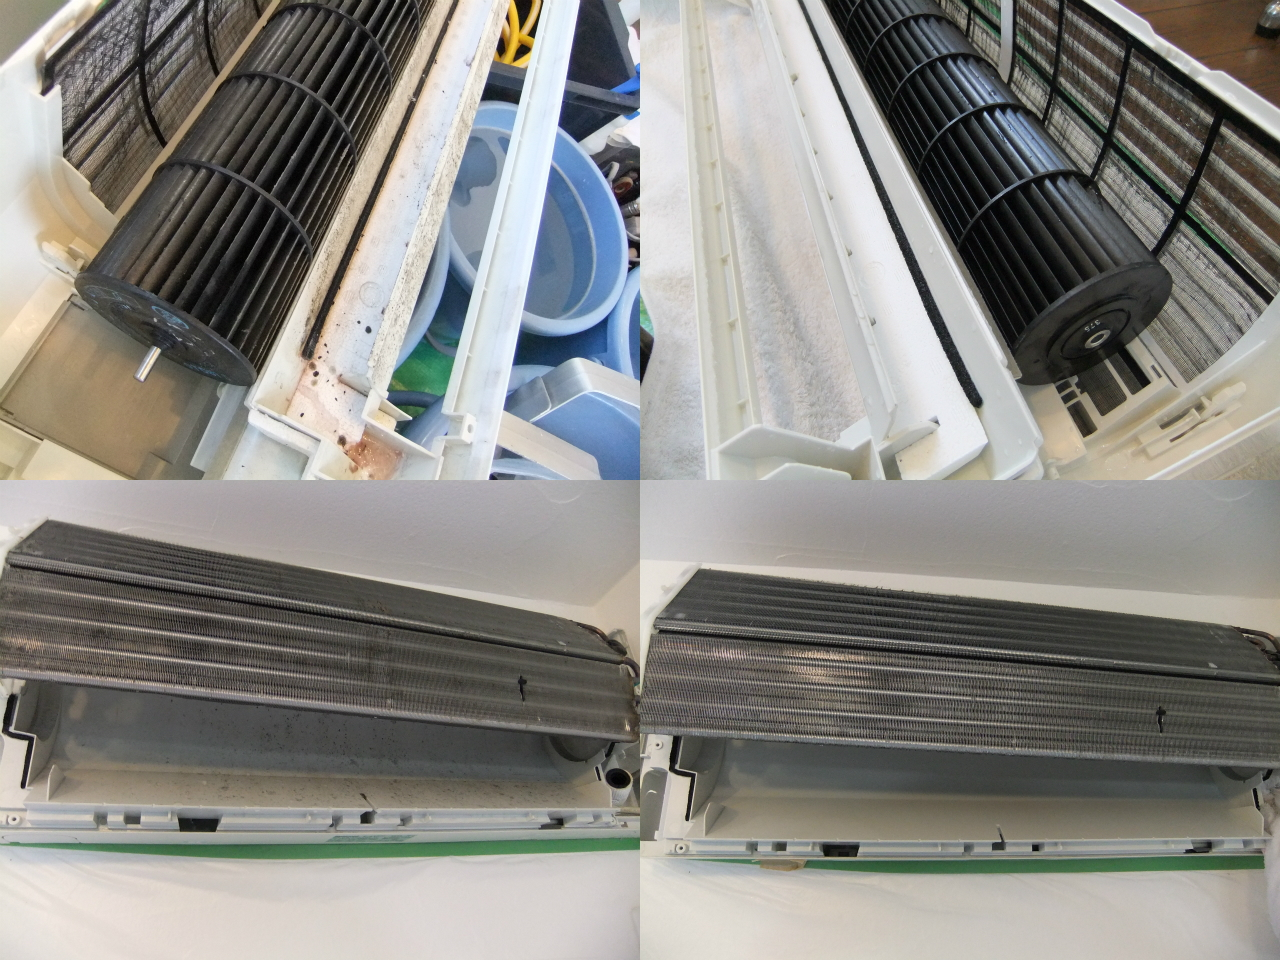 http://ajras.net/images/110912-aircon2.jpg